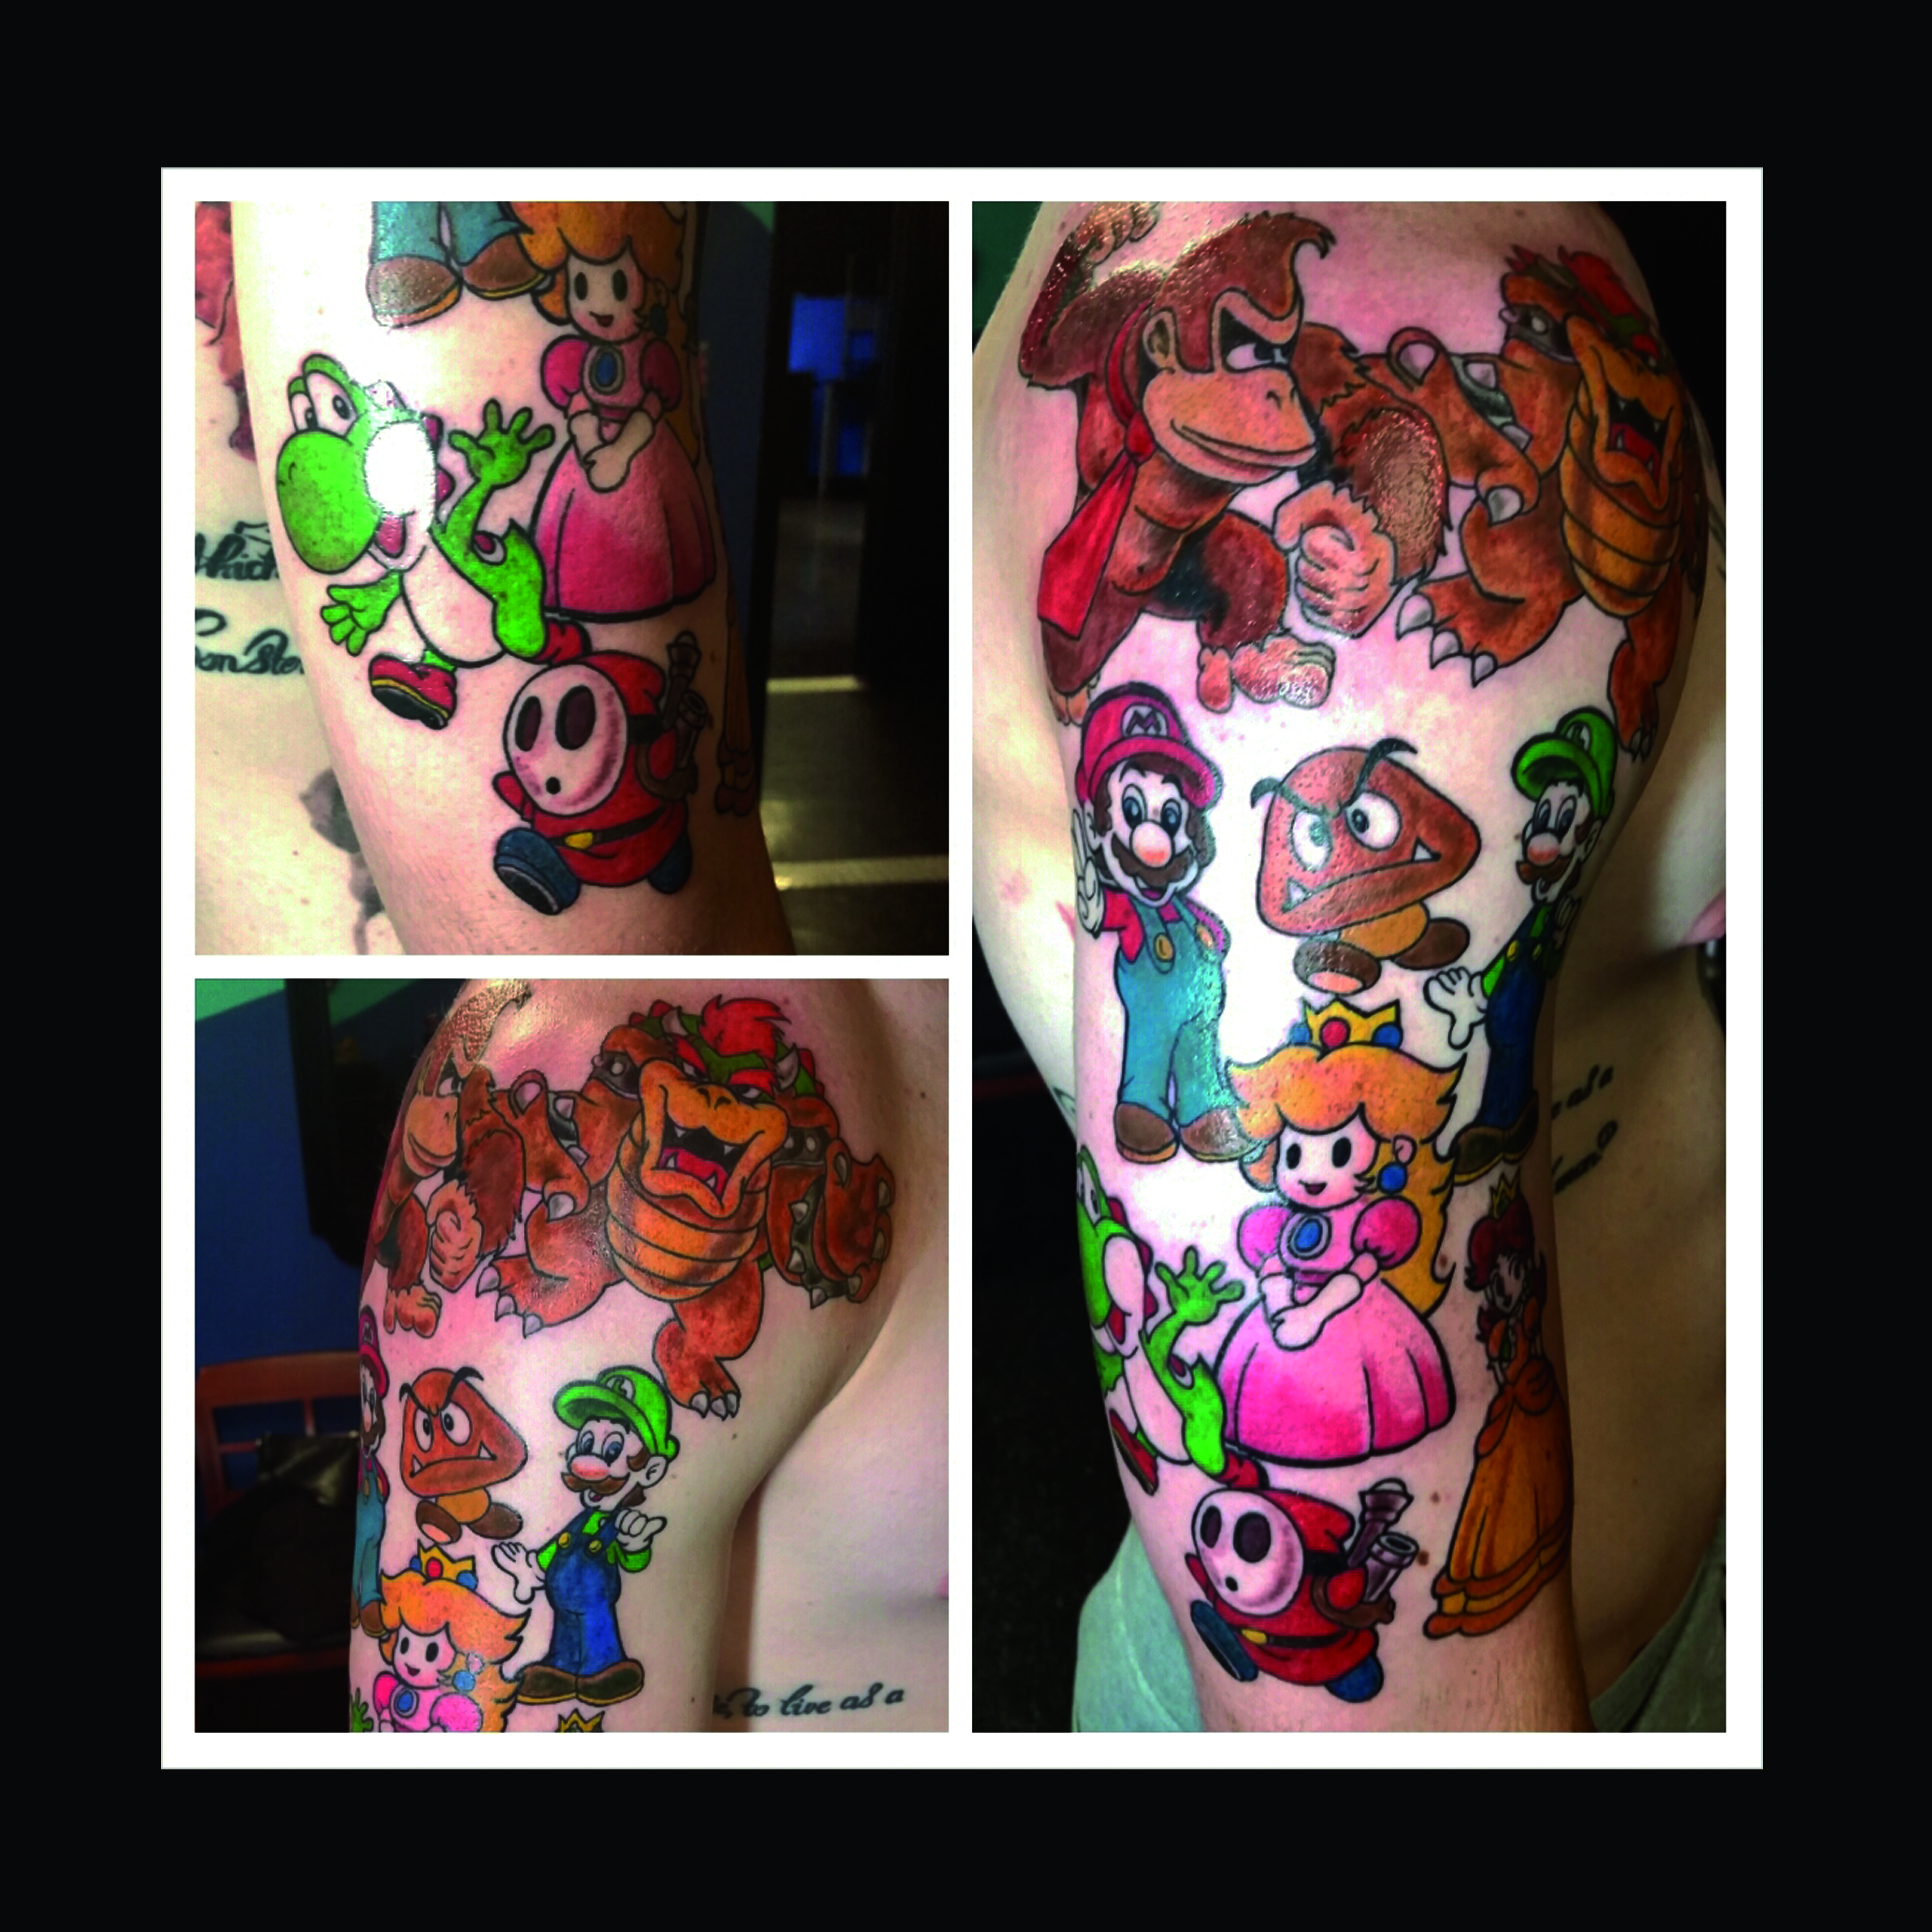 Tattoo places in pensacola fl / Pictures of colorado springs co